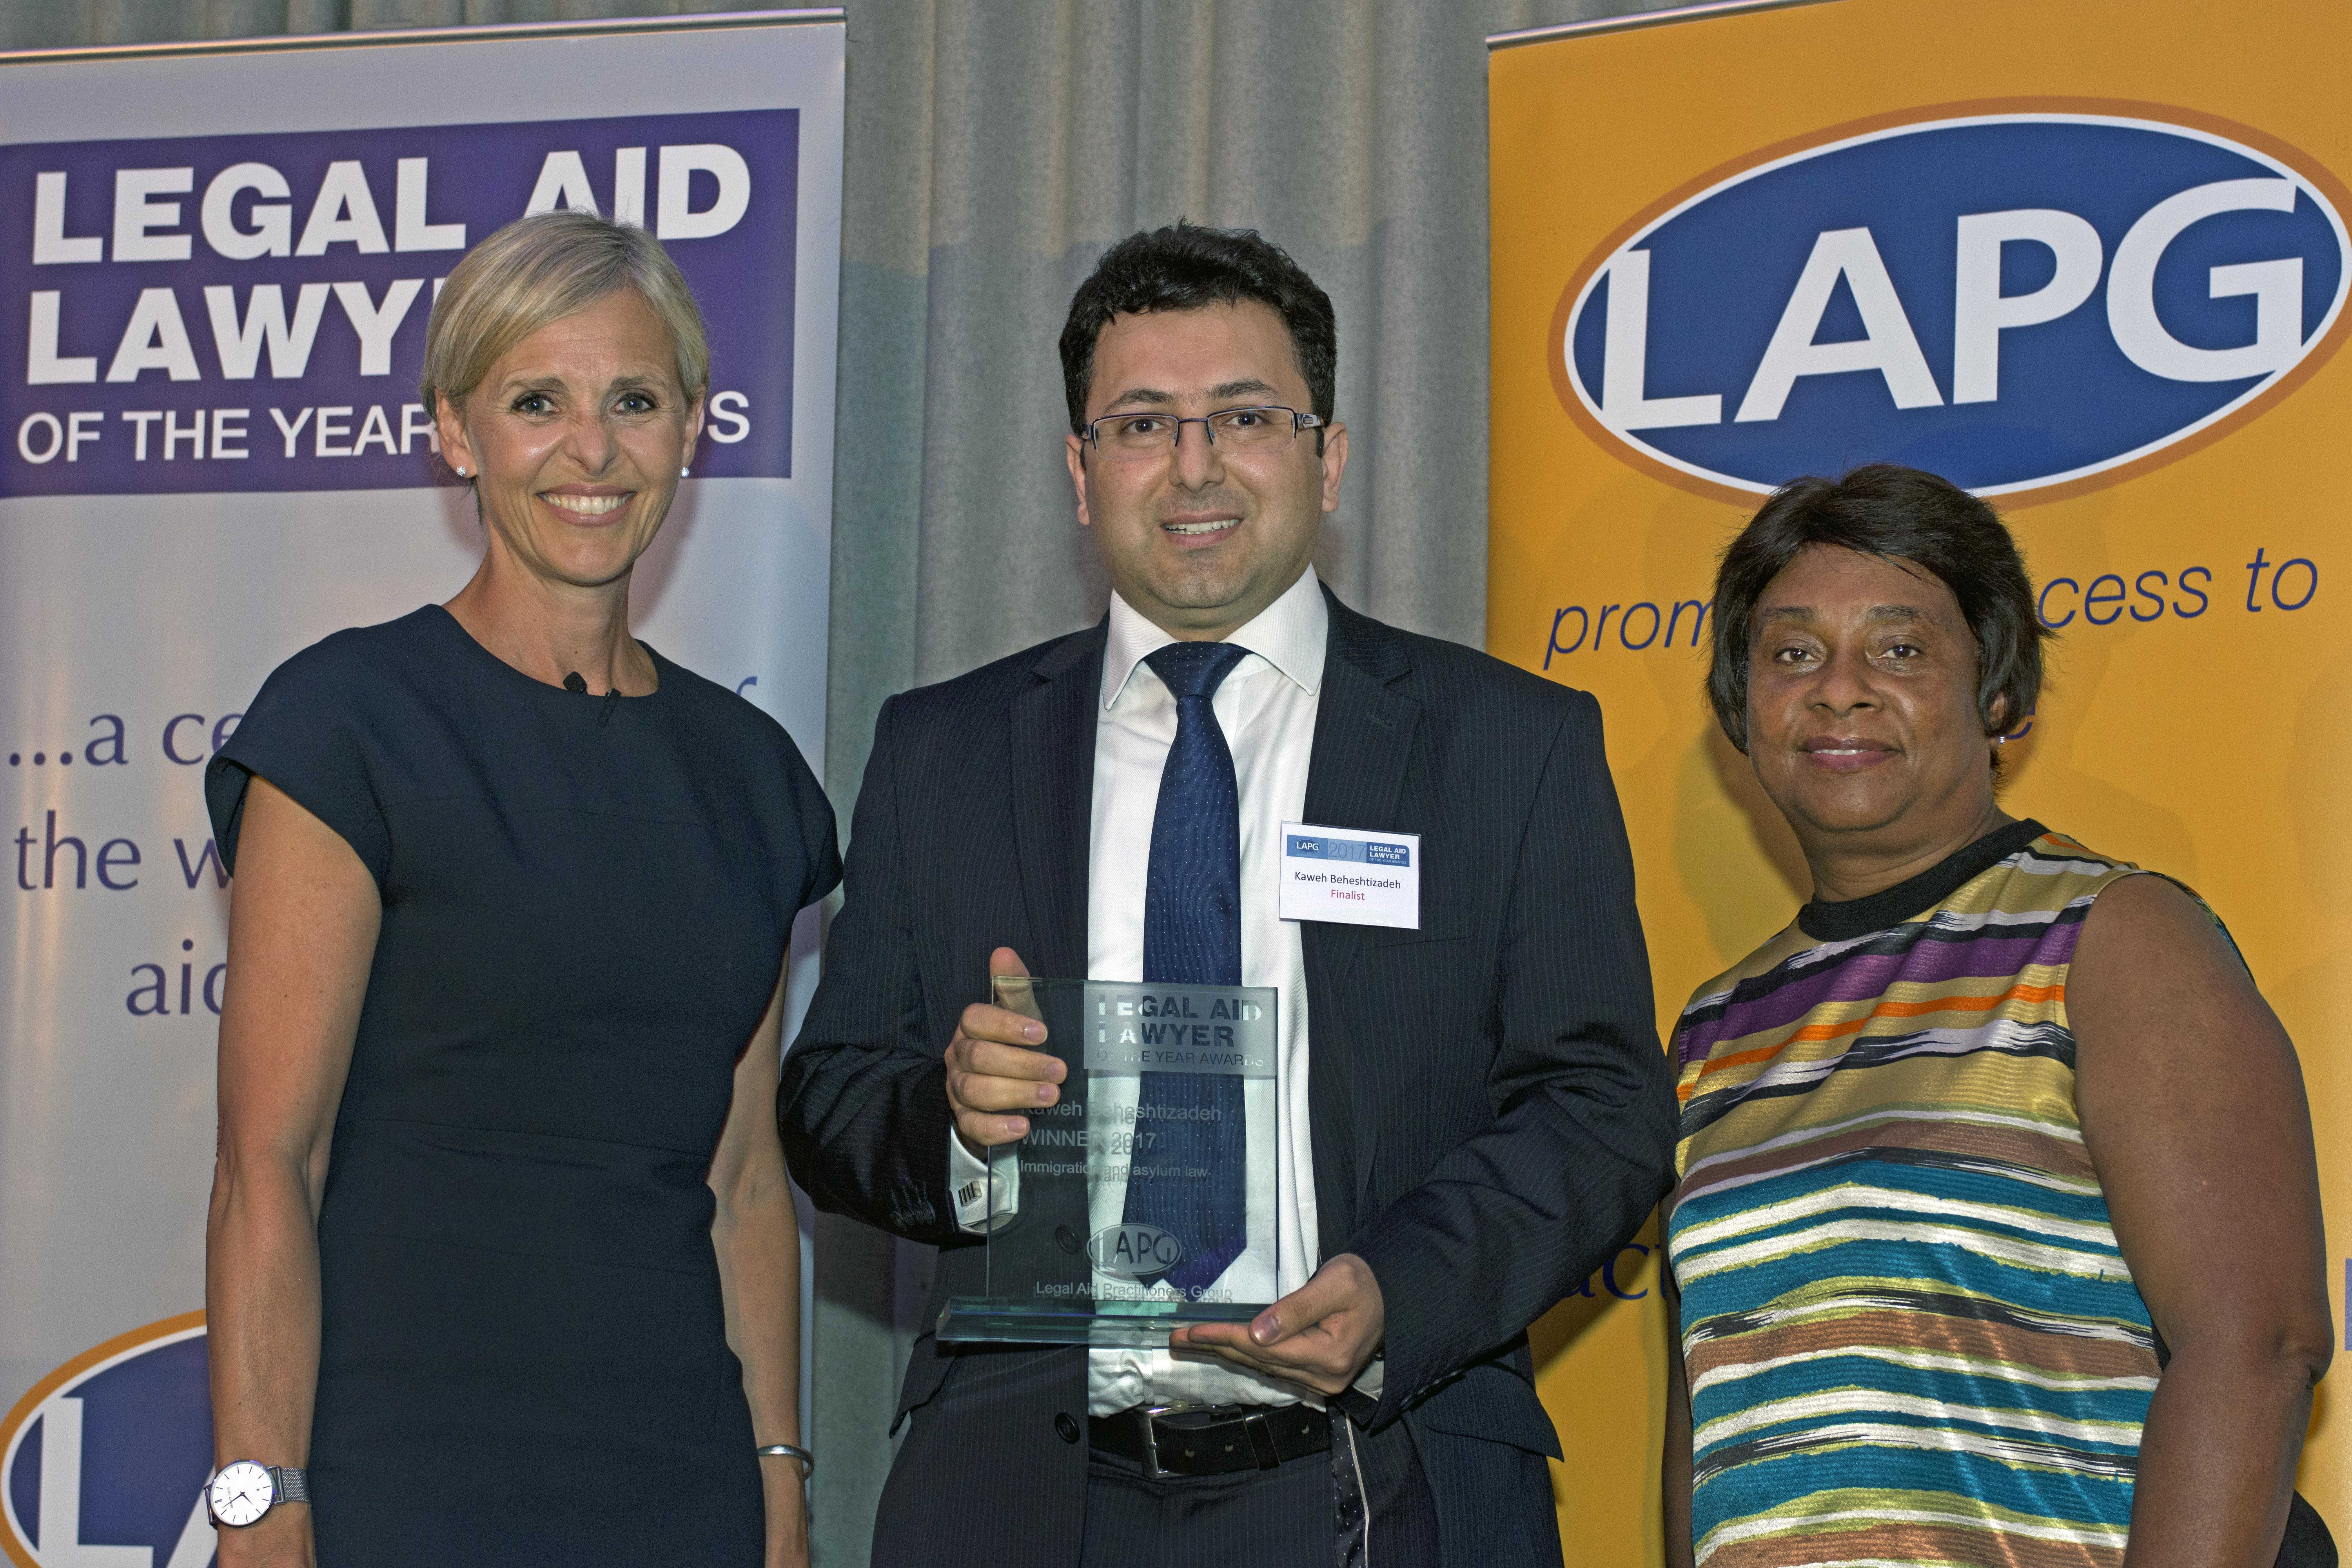 05.07.2017. Photography of LAPG 'Legal Aid Lawyer of the Year Awards 2017'. Etc.venues, 155 Bishopsgate, London, EC2M 3YX. © Copyright:Robert Aberman - Photographer Tel/Fax: +44 (0)20 7263 7899 Mobile: +44 (0)7970 185 838 Email: robert@robertaberman.co.uk © Copyright: Robert Aberman - Photographer All images are copyright of Robert Aberman. They are licensed to the client for uses specified only, and by named client only. Other use must be agreed in writing and may be subject to an additional fee. All reproductions of this photograph must be credited. Moral rights are asserted in accordance with the Copyright, Designs & Patents Act 1988.